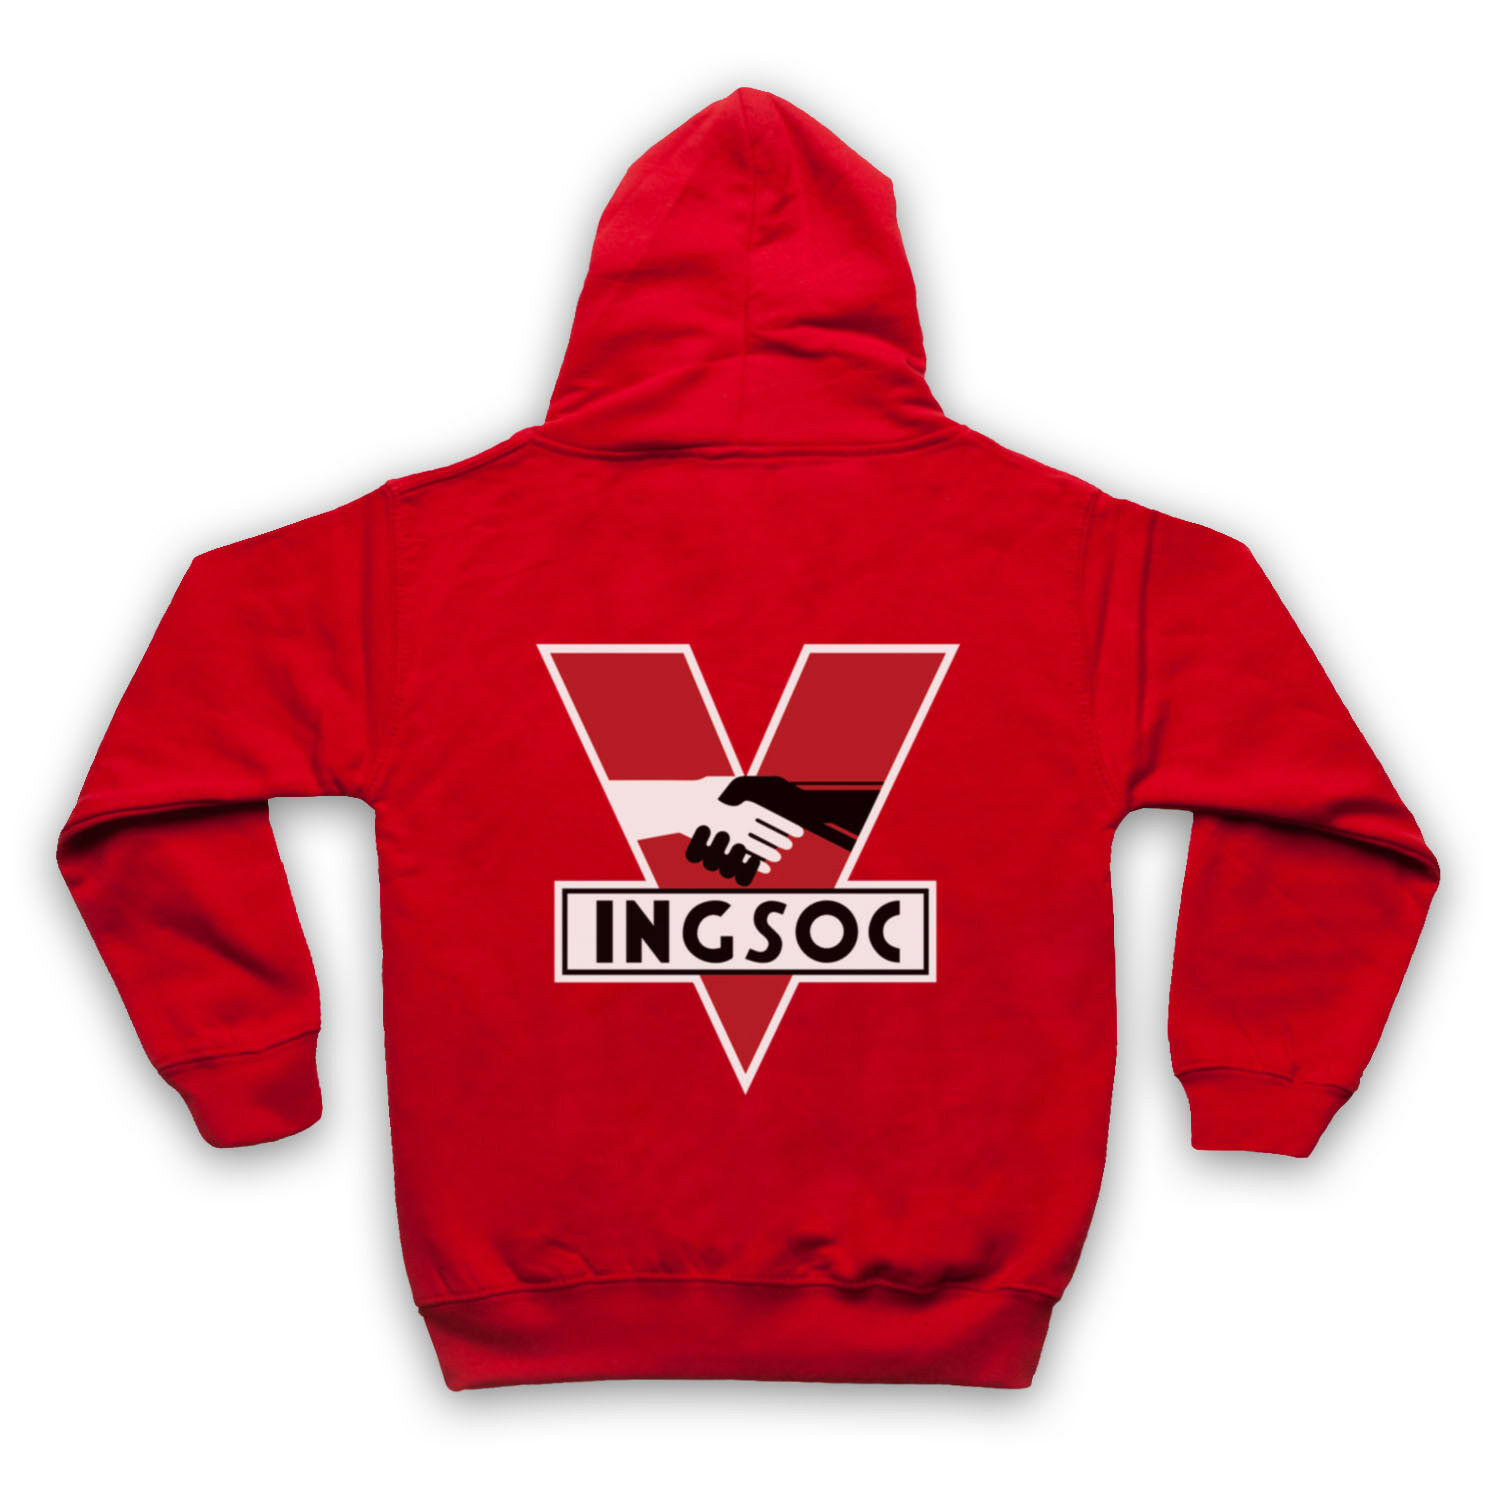 NINETEEN EIGHTY-FOUR 1984 INGSOC INGSOC INGSOC POLITICAL PARTY LOGO ADULTS & KIDS HOODIE | Ausgezeichnet